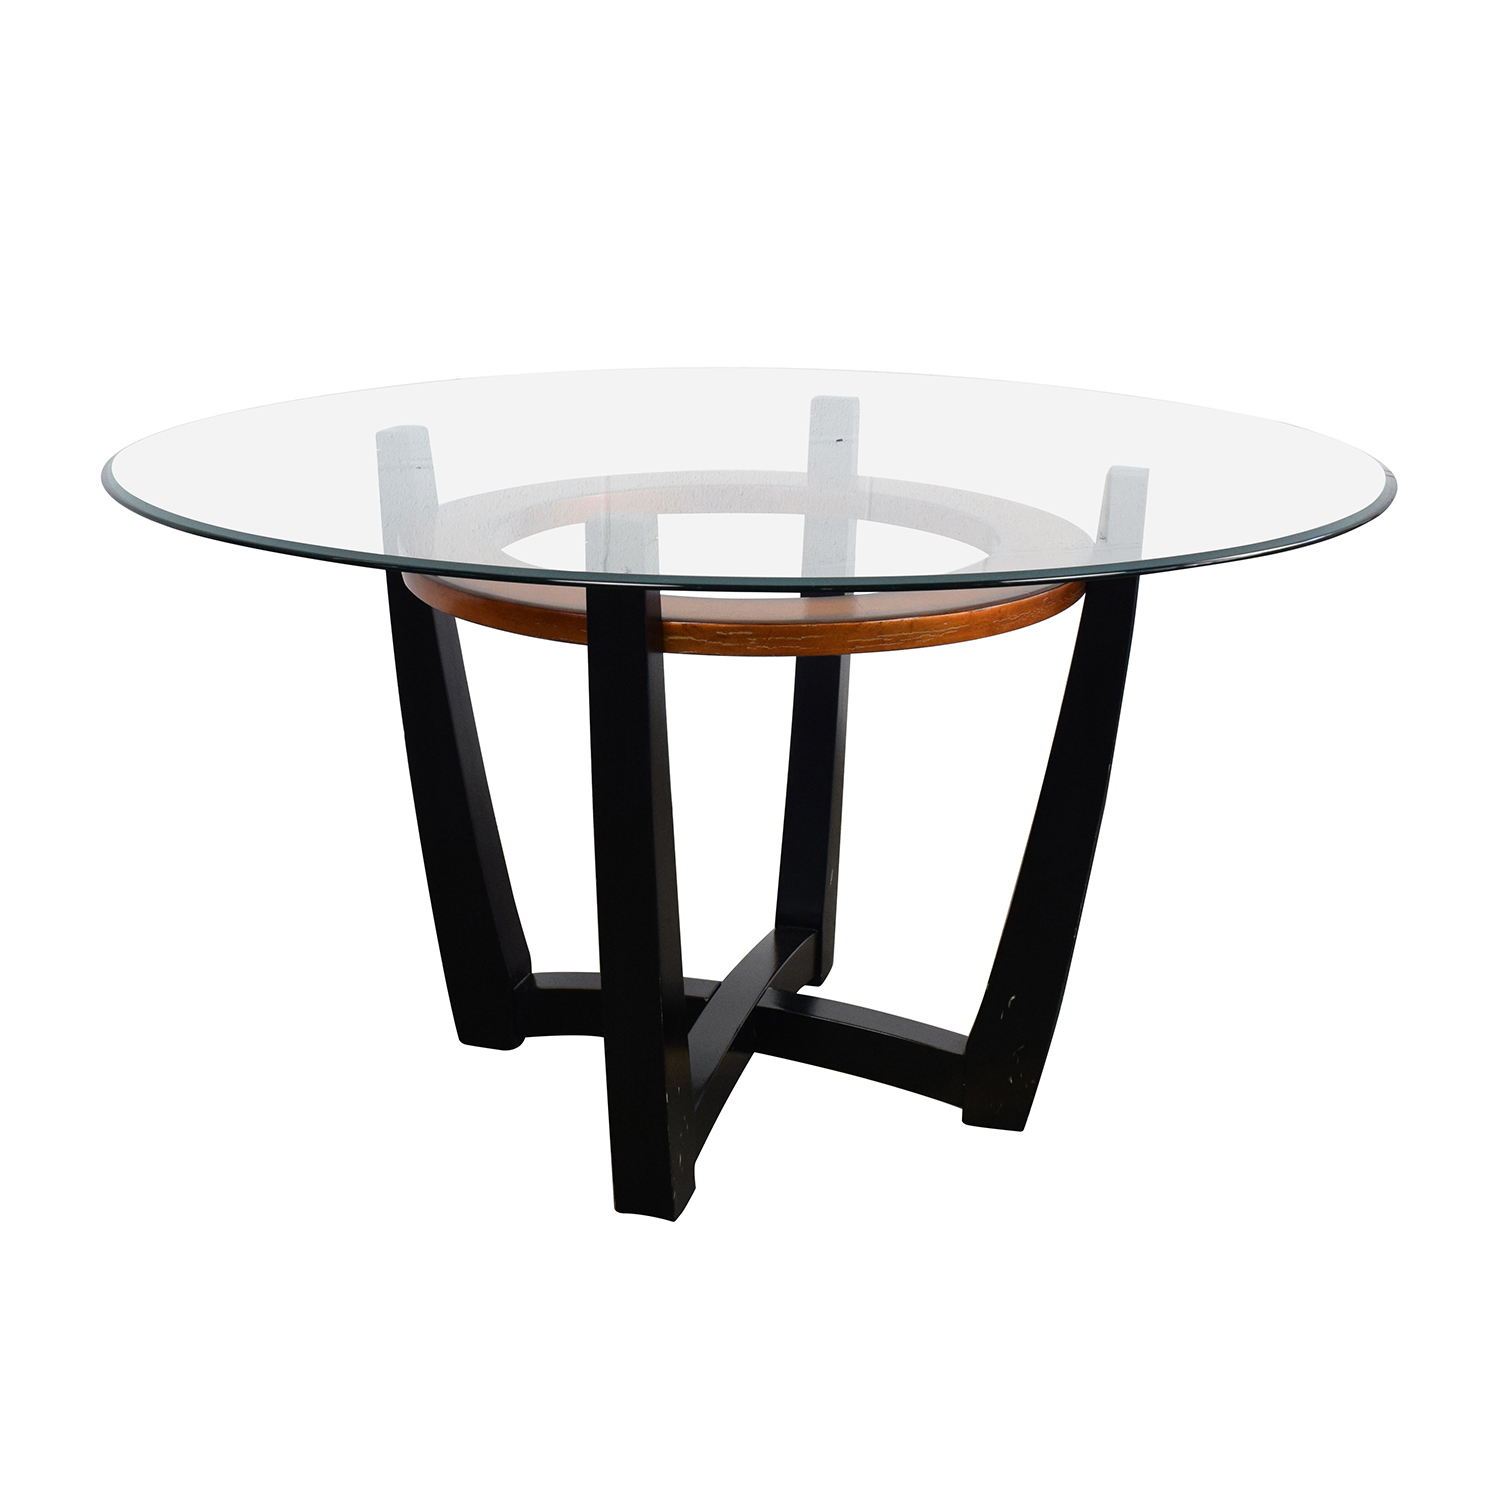 round glass kitchen tables desing 88 off macy 39s elation dining table